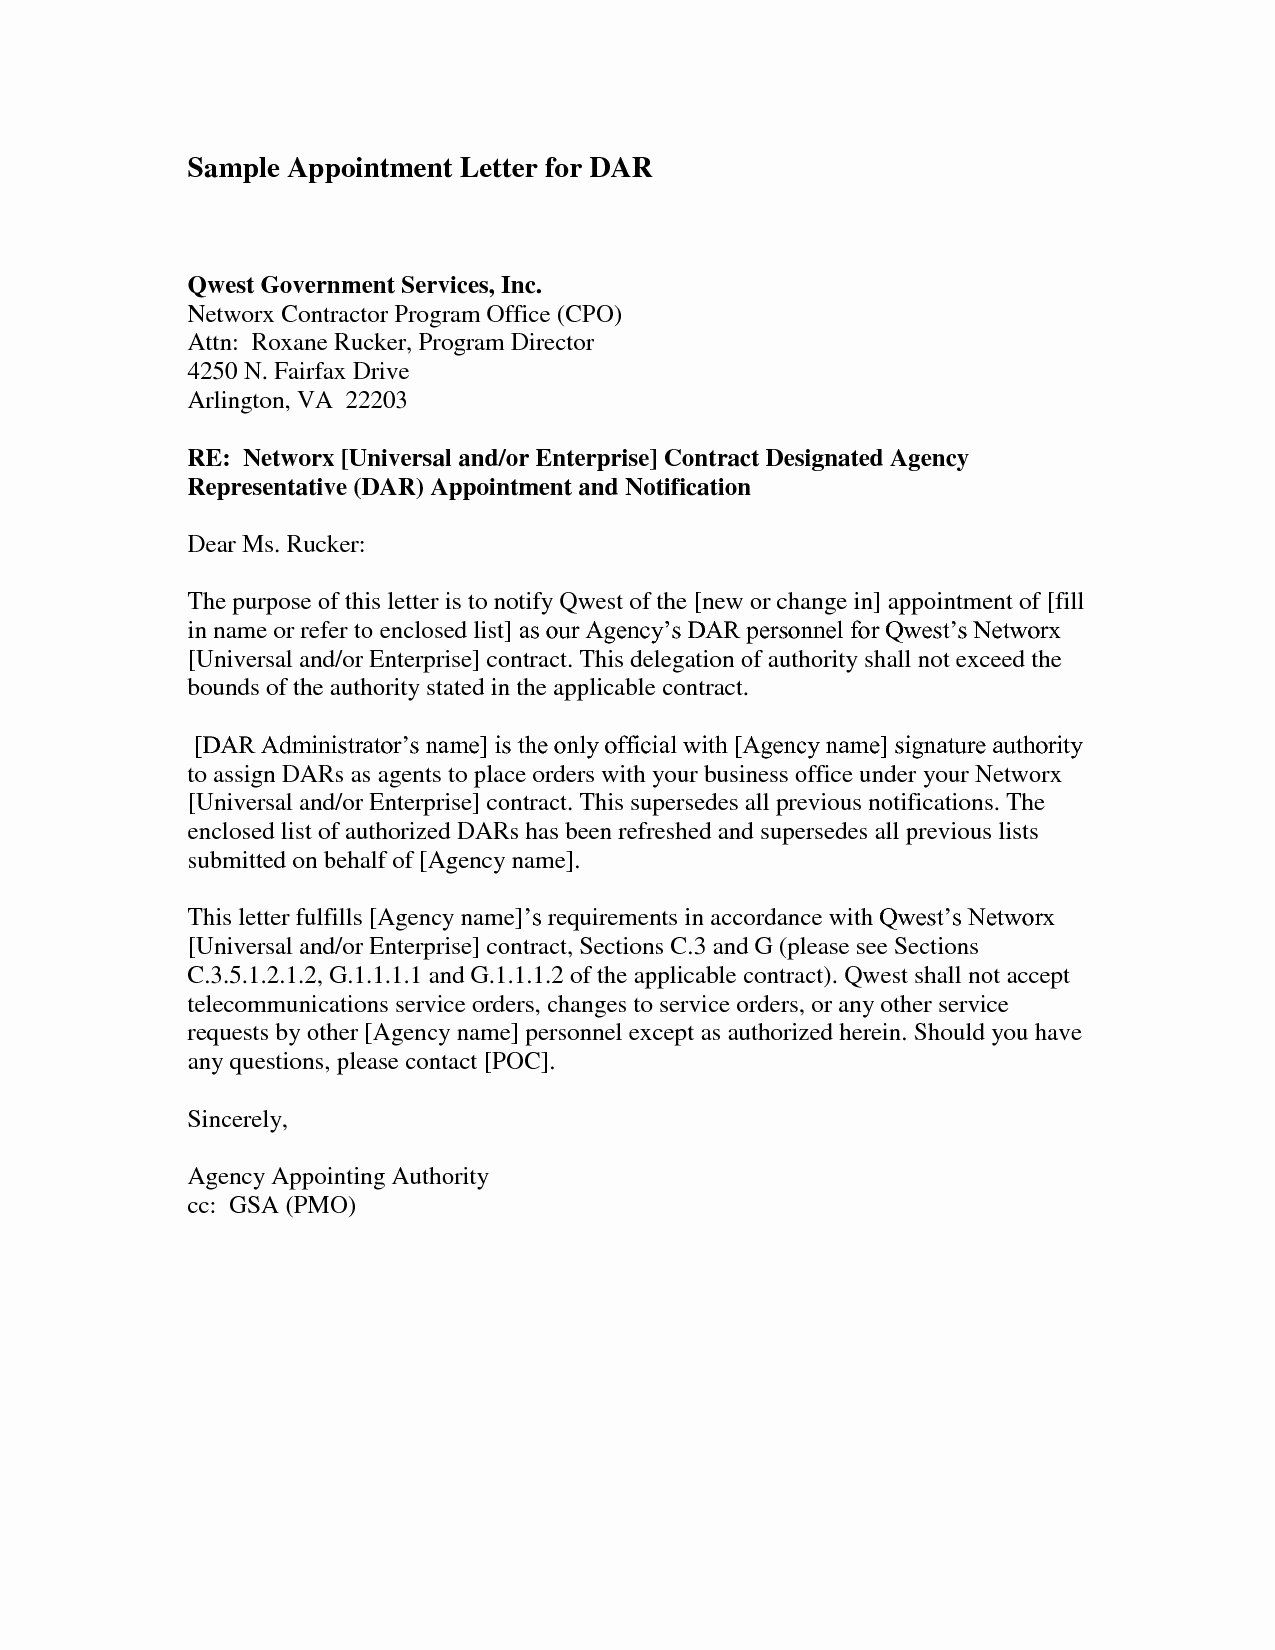 Sample Proof Of Funds Letter Template In 2020 Letter Templates